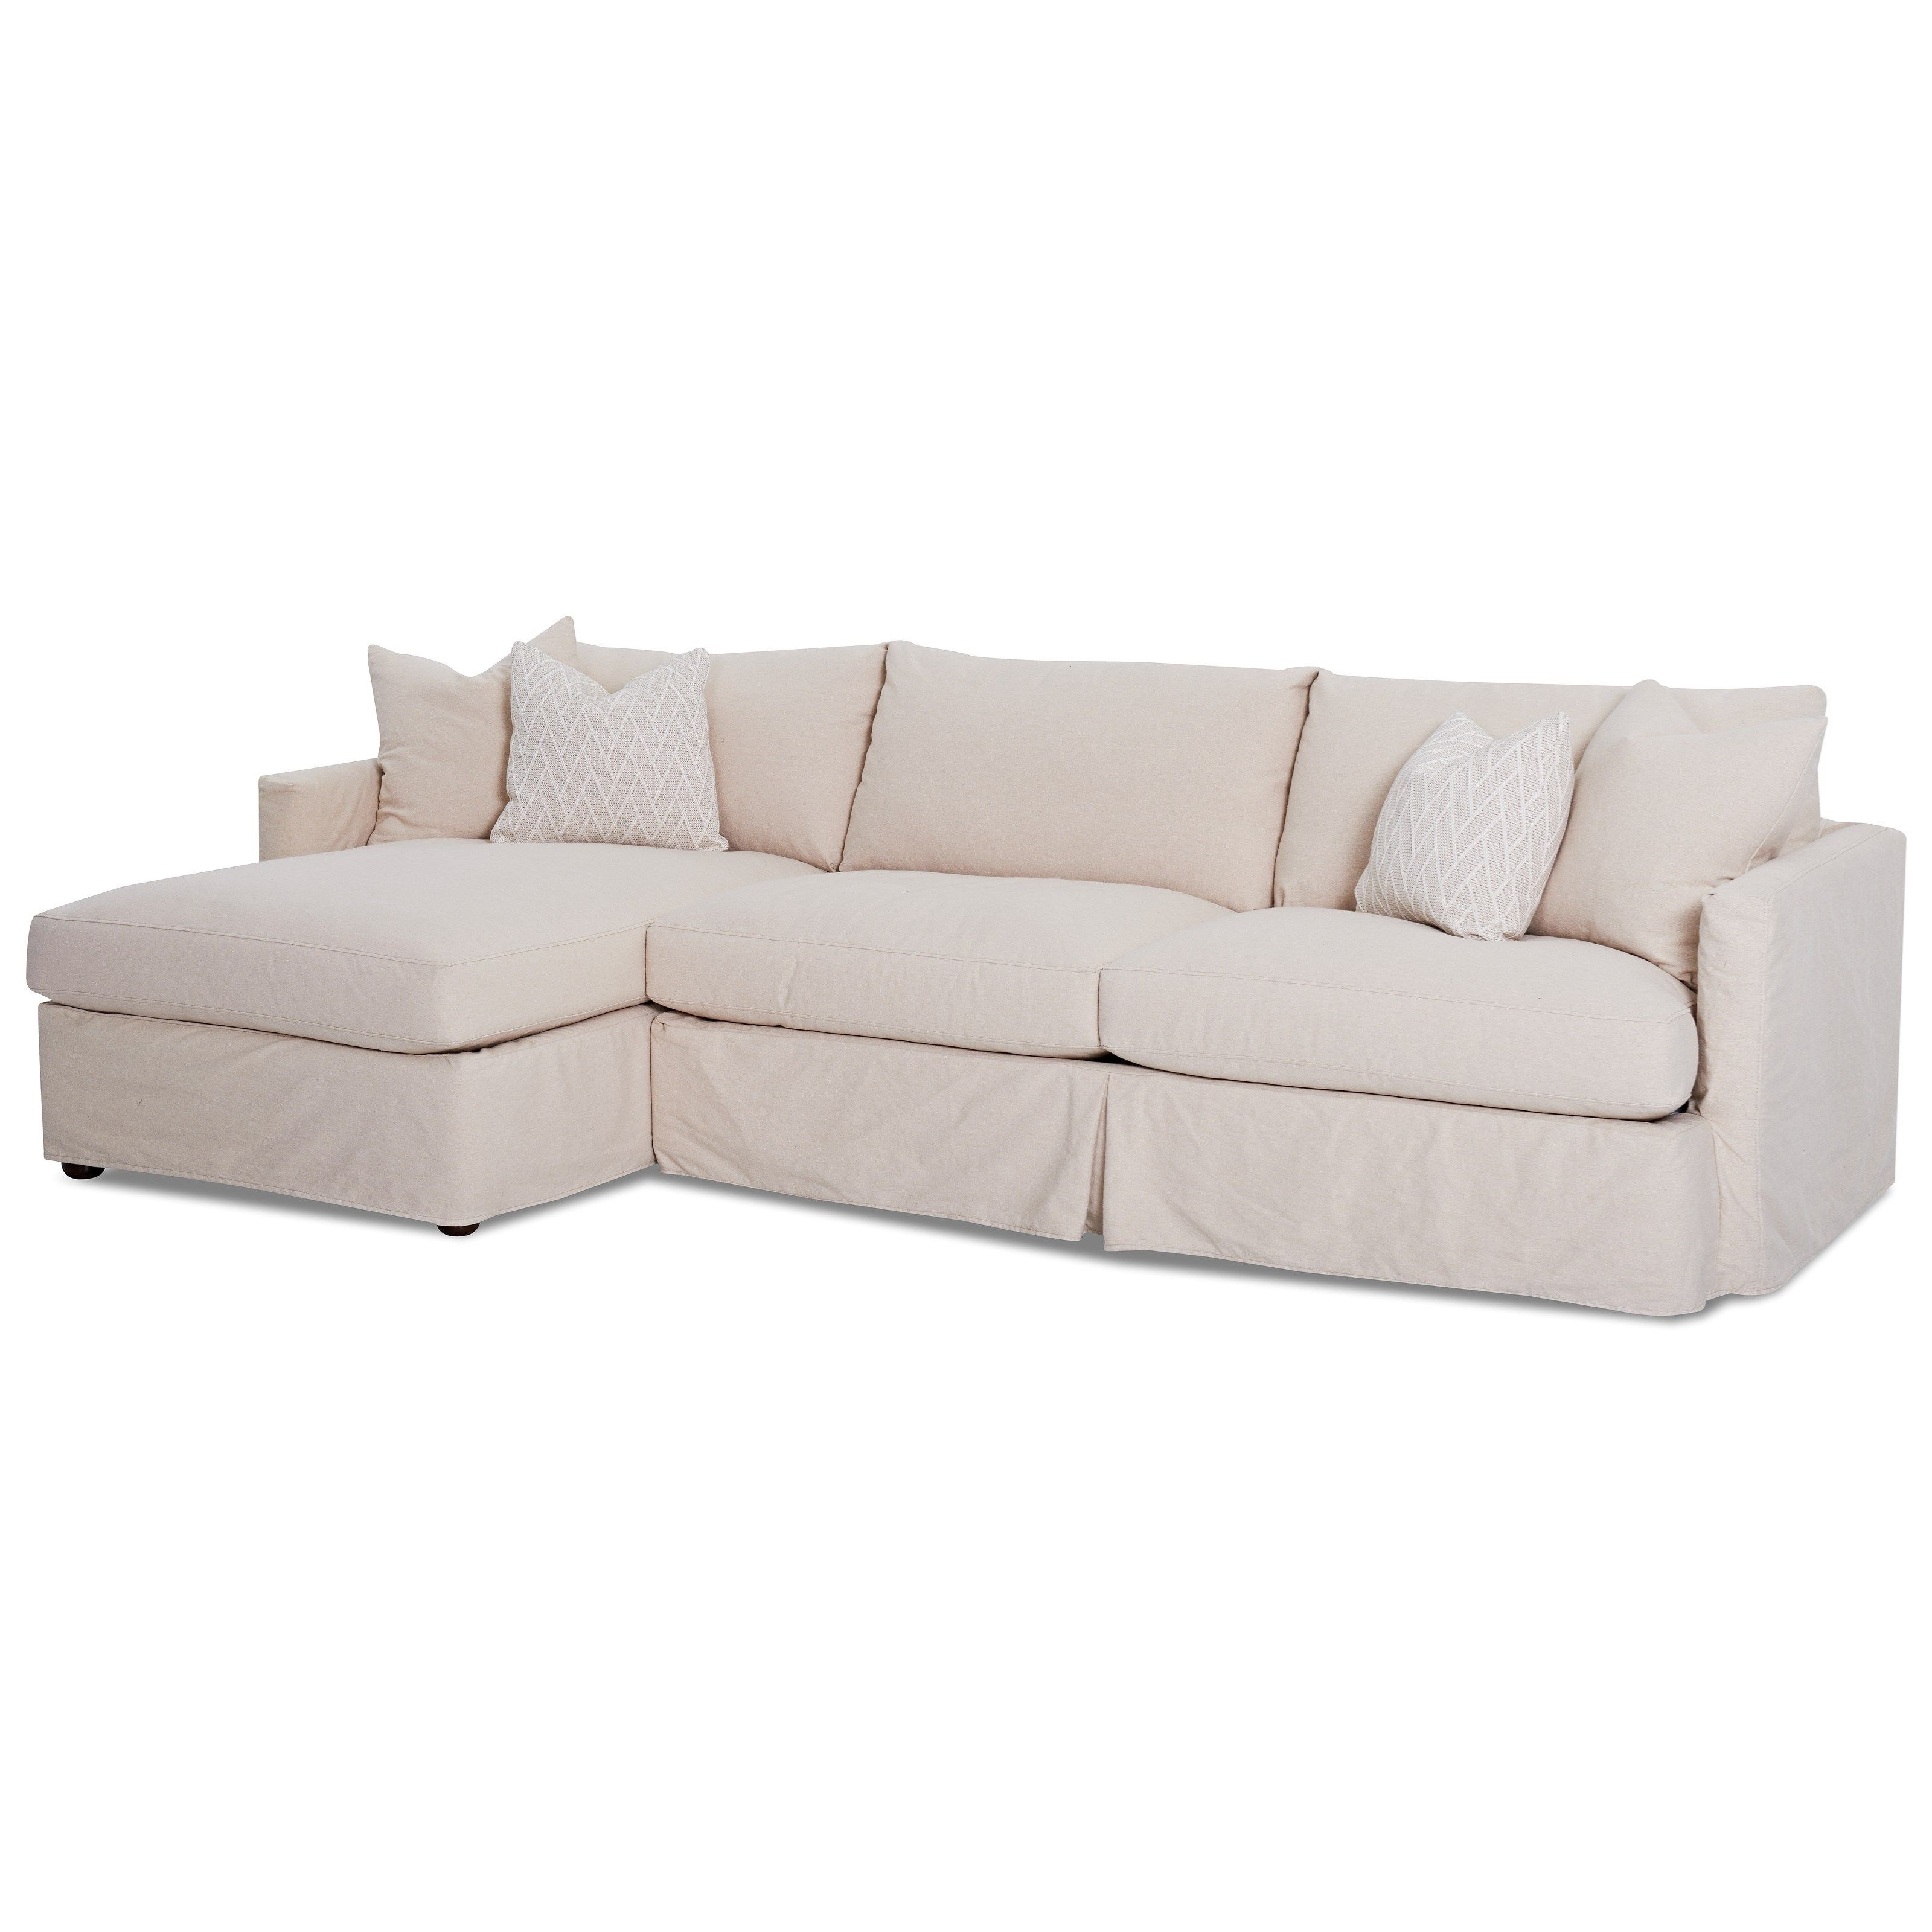 Leisure 2 Pc Sectional Sofa With Slipcoverklaussner | Living In Cohen Down 2 Piece Sectionals (Image 12 of 25)